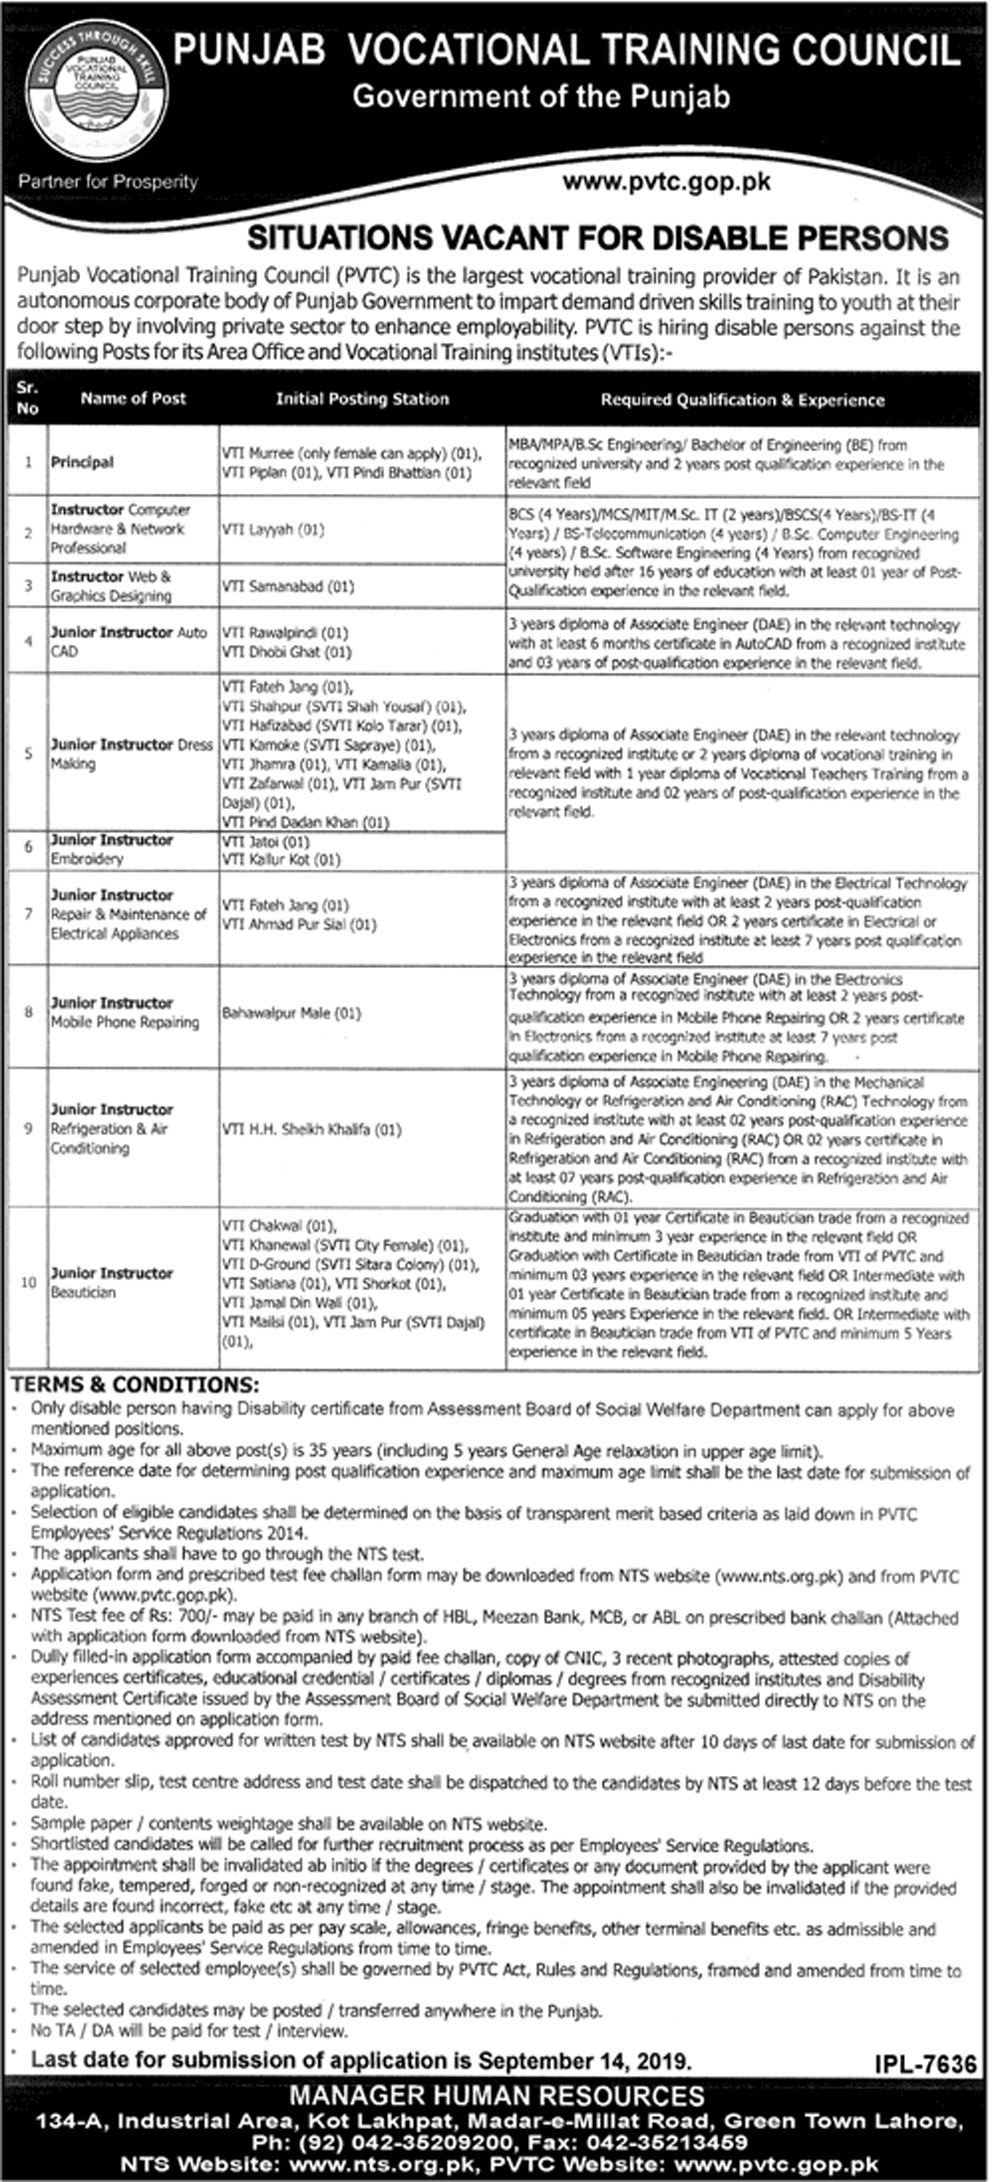 Punjab Vocational Training Council PVTC Jobs Via NTS